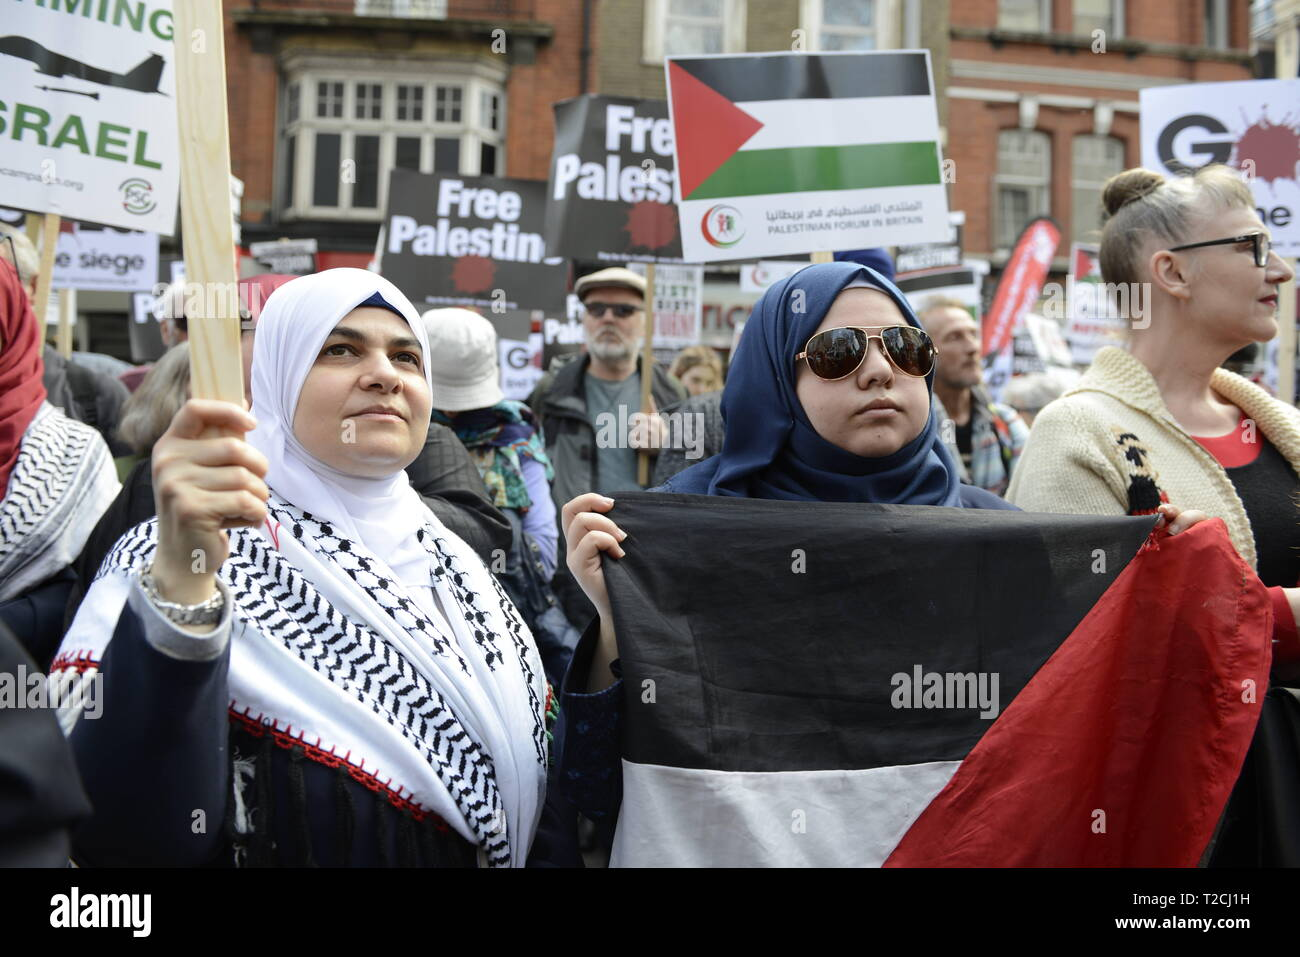 London, Greater London, UK. 30th Mar, 2019. Protesters are seen holding placards and a Palestinian flag during the Exist, Resist, Return Rally for Palestine in London.People gather outside the Israeli embassy in London to demonstrate against the Israeli government, and to demand respect for Palestinians' fundamental rights to exist, resist and return. Palestinians are calling for global protests to support their right to come back to their villages. Rally was organized by Palestine Solidarity Campaign, Stop the War Coalition, Palestinian Forum in Britain, Friends of Al- Aqsa, - Stock Image